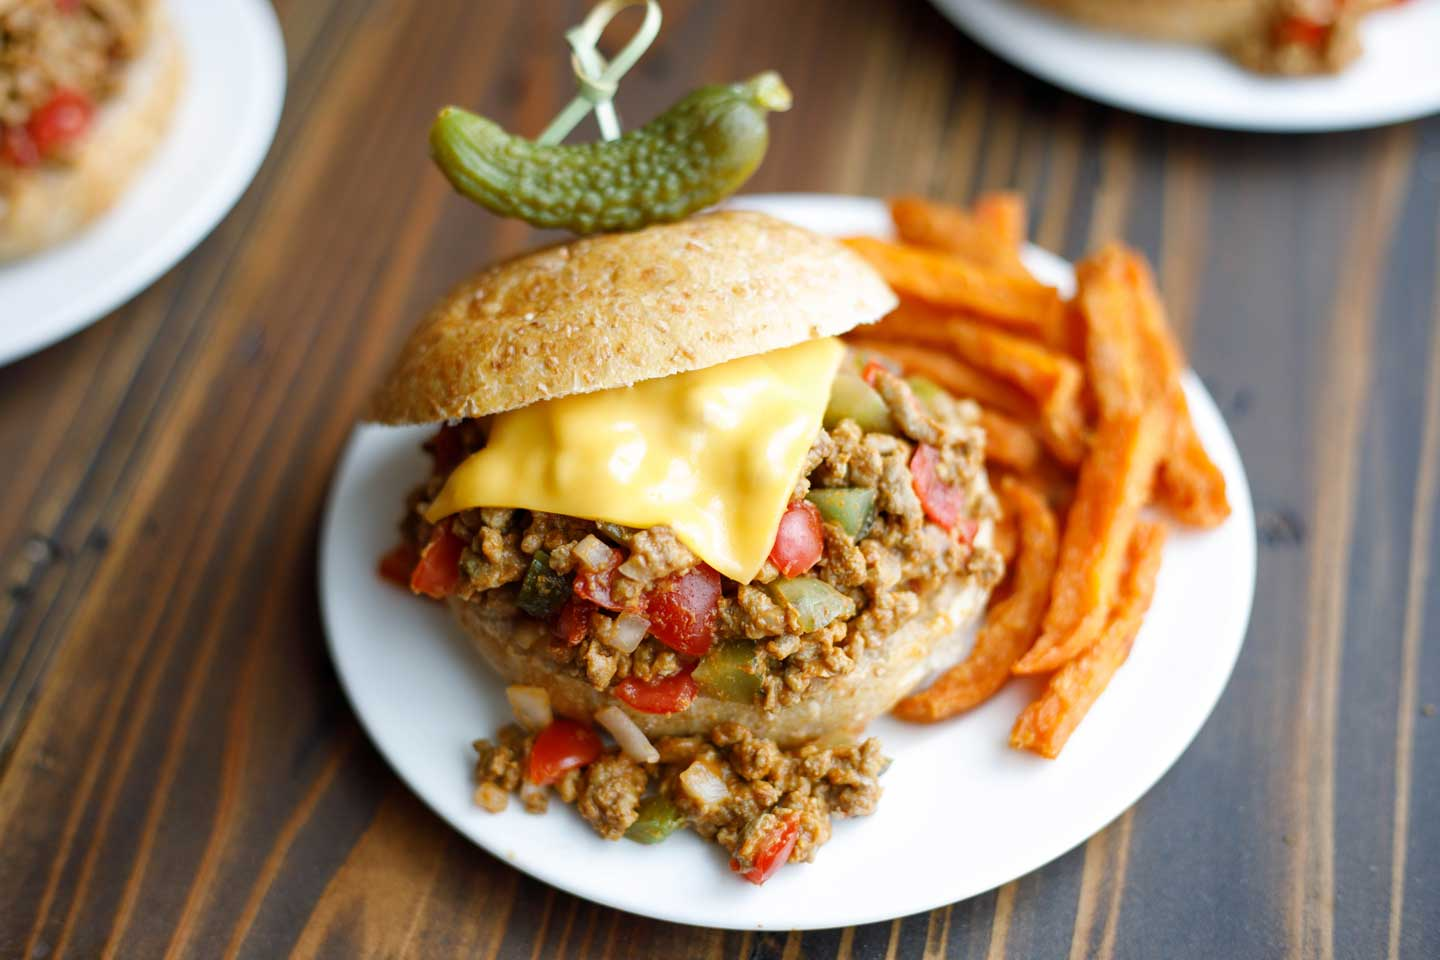 A sweet pickle on top and sweet potato fries to the side - perfect companions for these Cheeseburger Sloppy Joes!